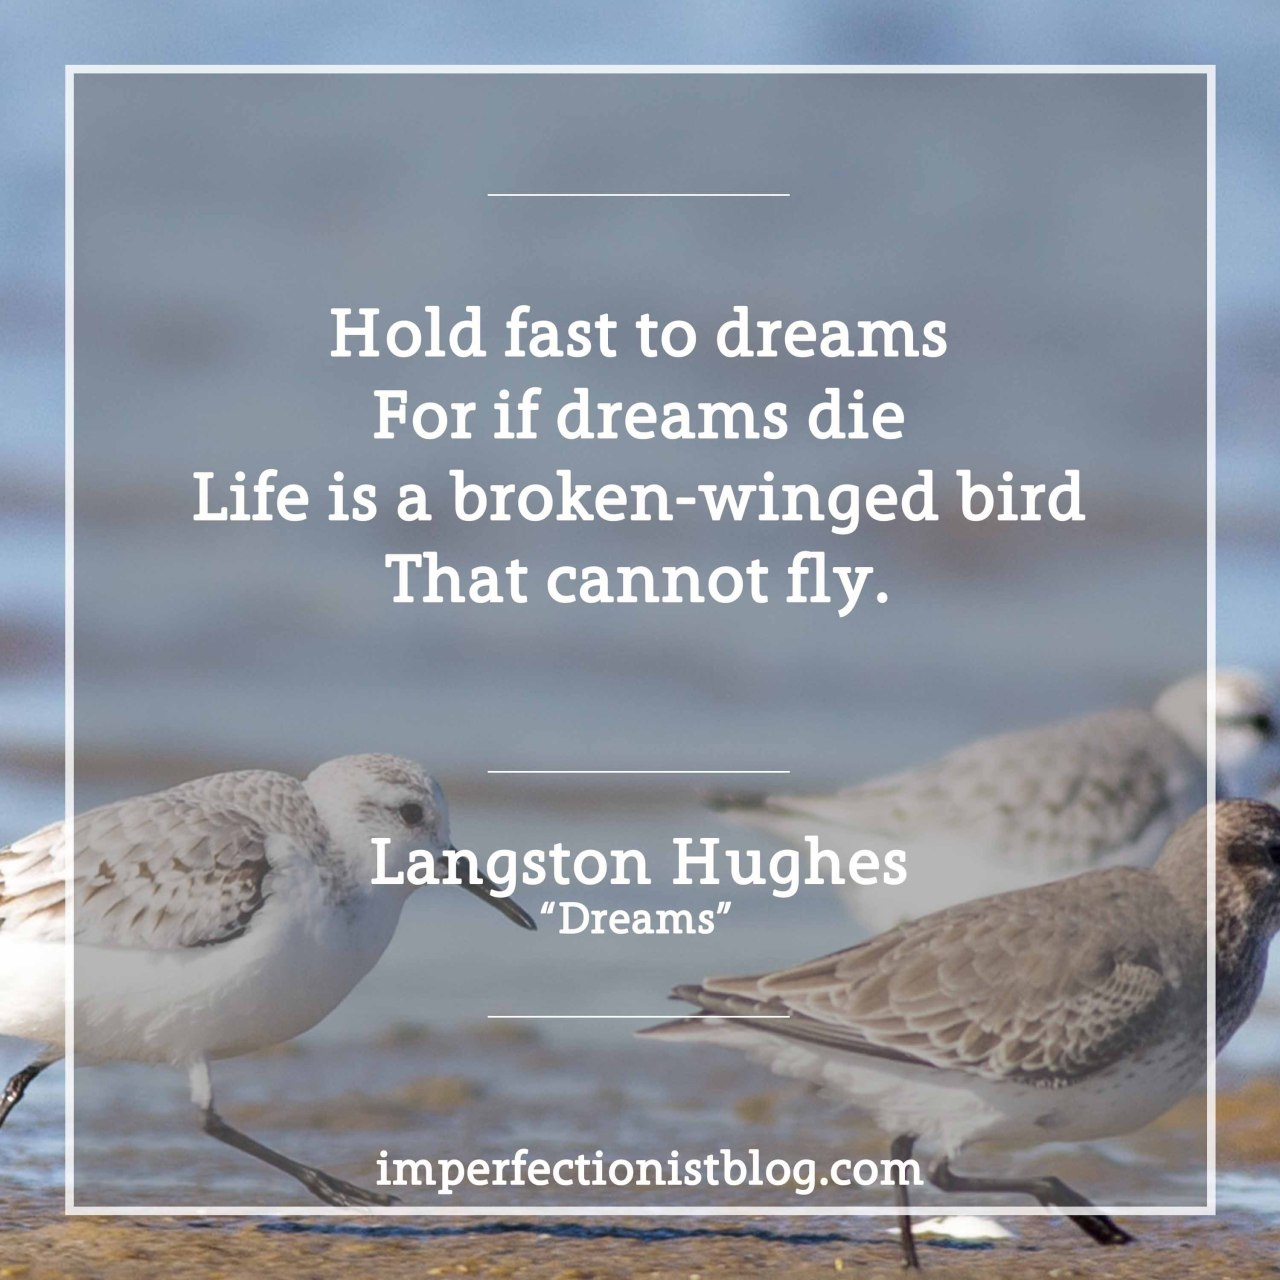 "#96 - Langston Hughes, born on this day in 1902, on dreams:""Hold fast to dreams For if dreams dieLife is a broken-winged birdThat cannot fly.Hold fast to dreamsFor when dreams goLife is a barren fieldFrozen with snow.""